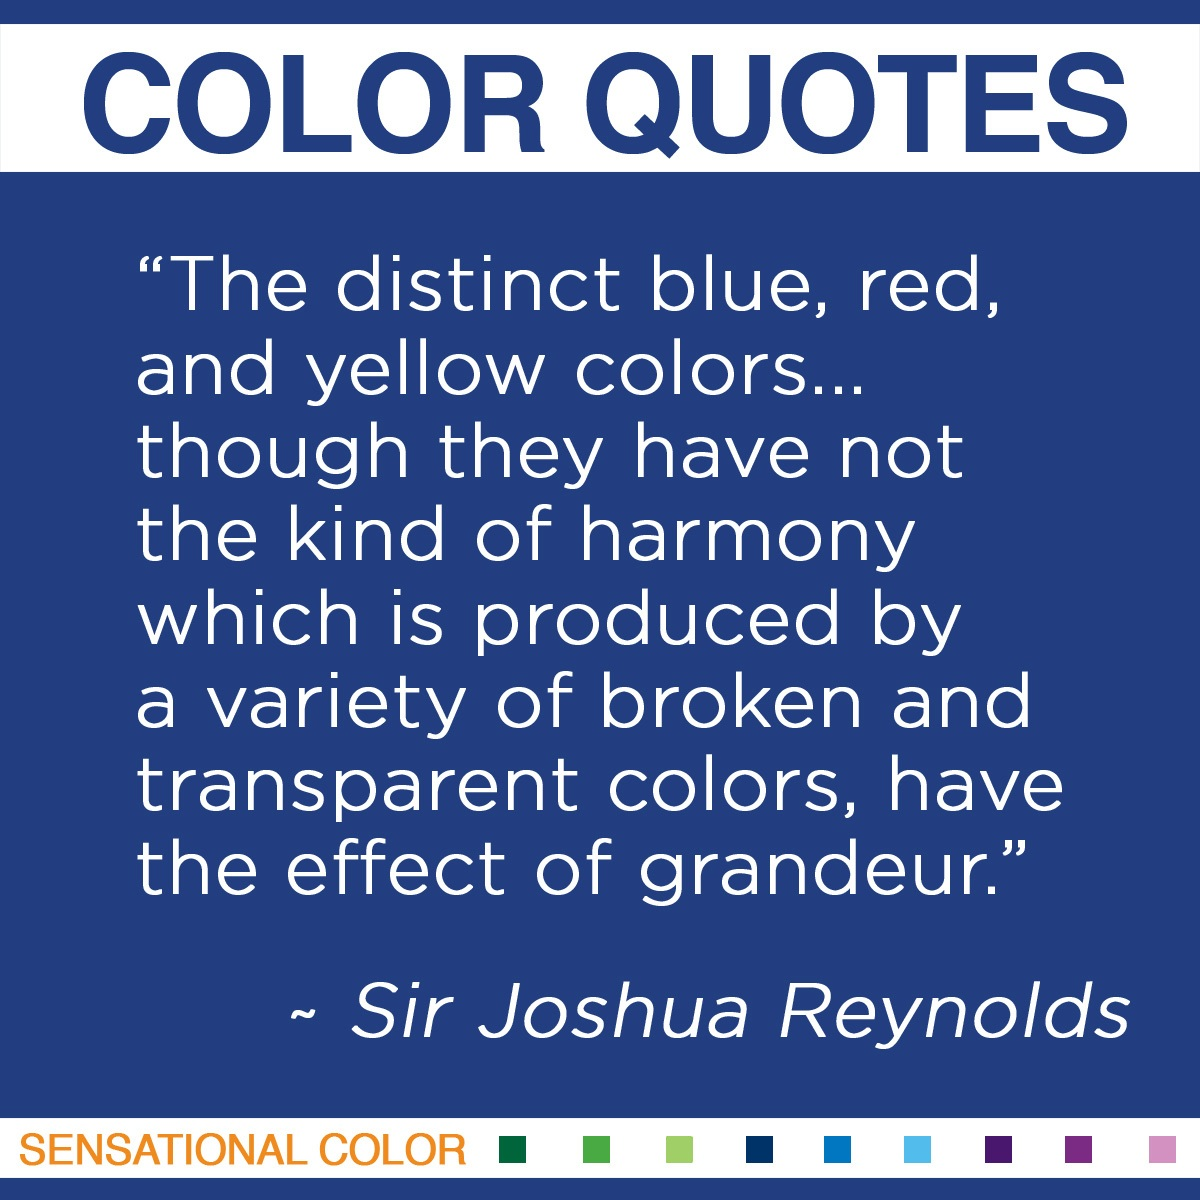 """The distinct blue, red, and yellow colors… though they have not the kind of harmony which is produced by a variety of broken and transparent colors, have the effect of grandeur."" - Sir Joshua Reynolds"